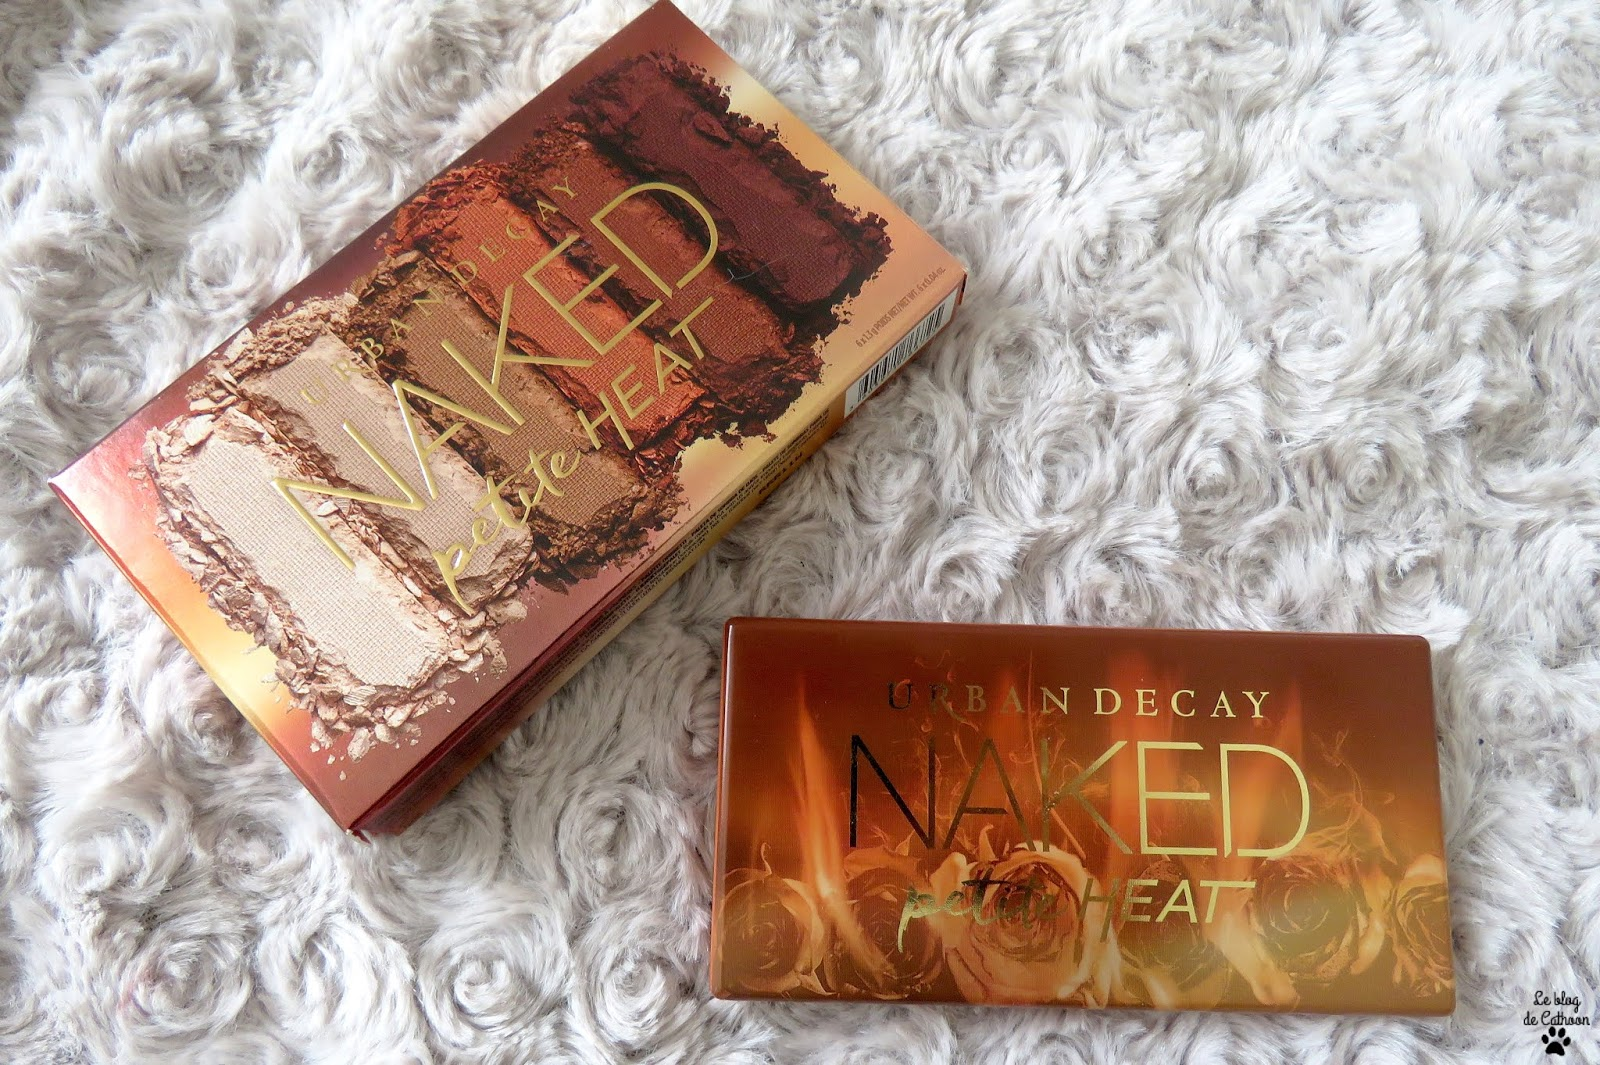 Naked Petite Heat - Urban Decay